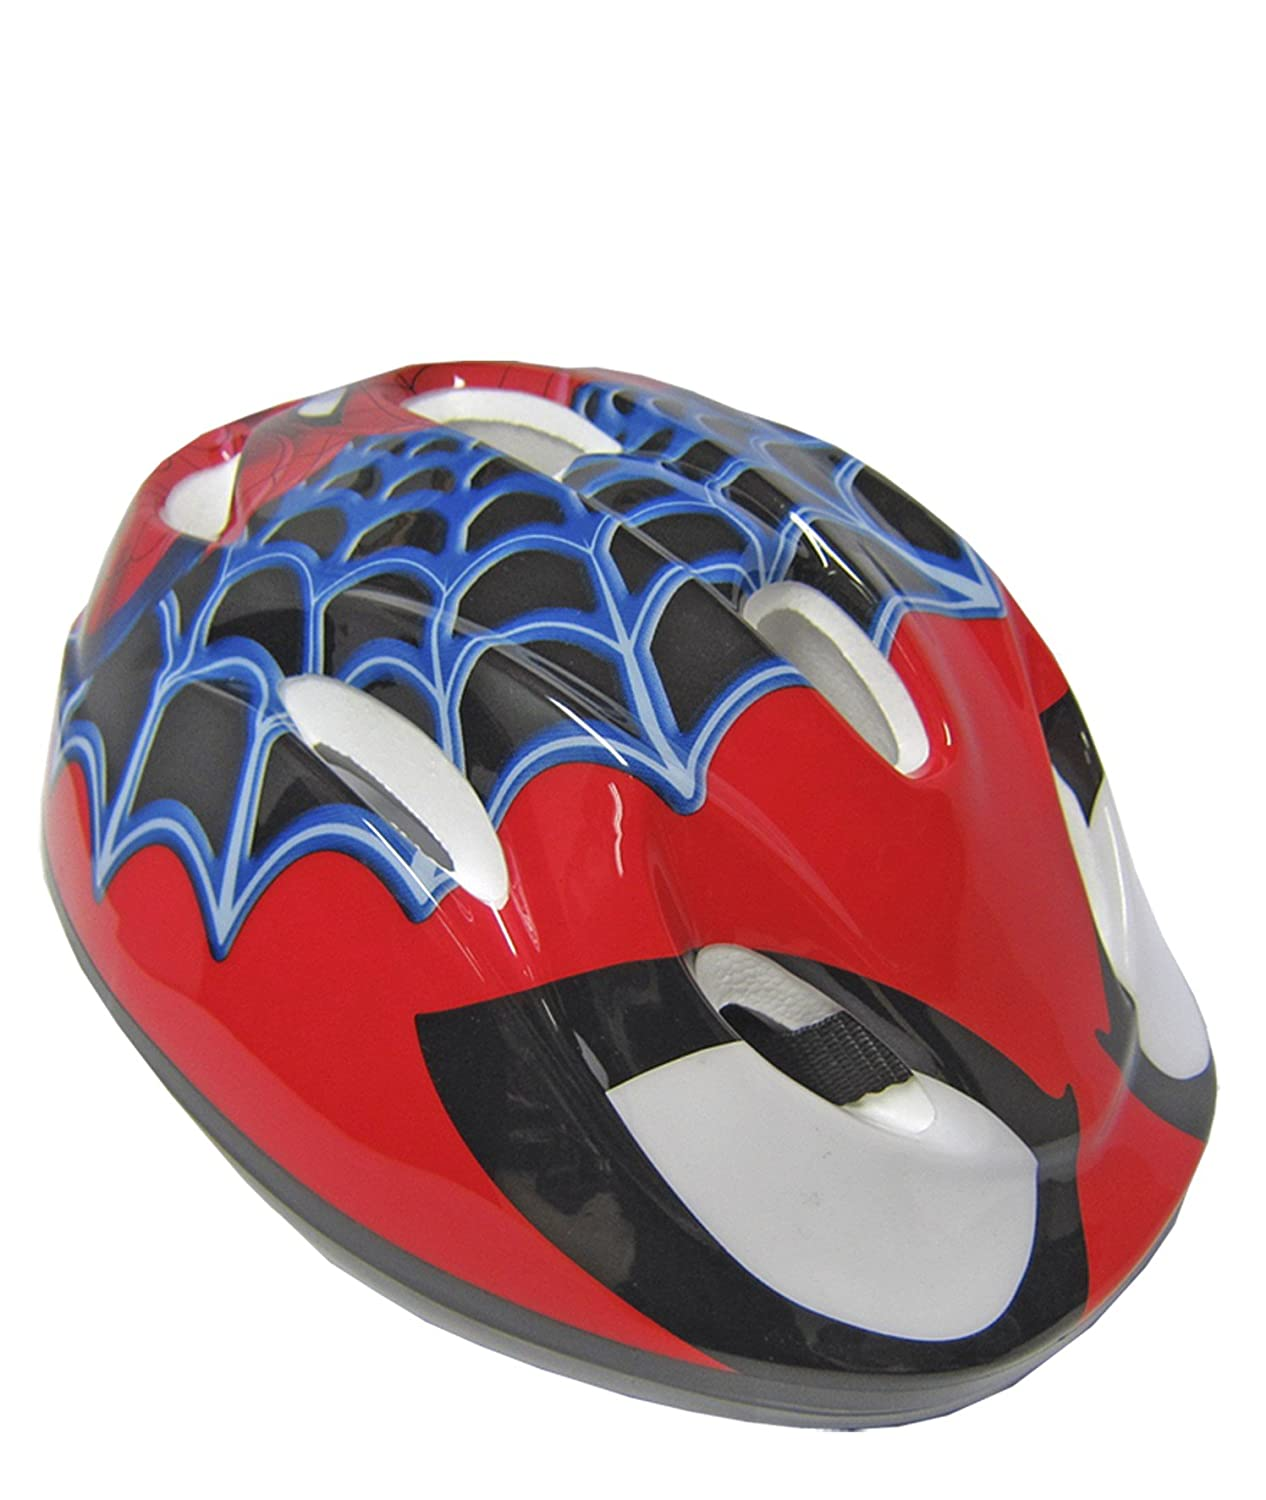 Toim Spiderman Casco, Color Rojo/Blanco/Negro/Azul, 50 centimeters/56 Centimeters (85-10860): Amazon.es: Juguetes y juegos